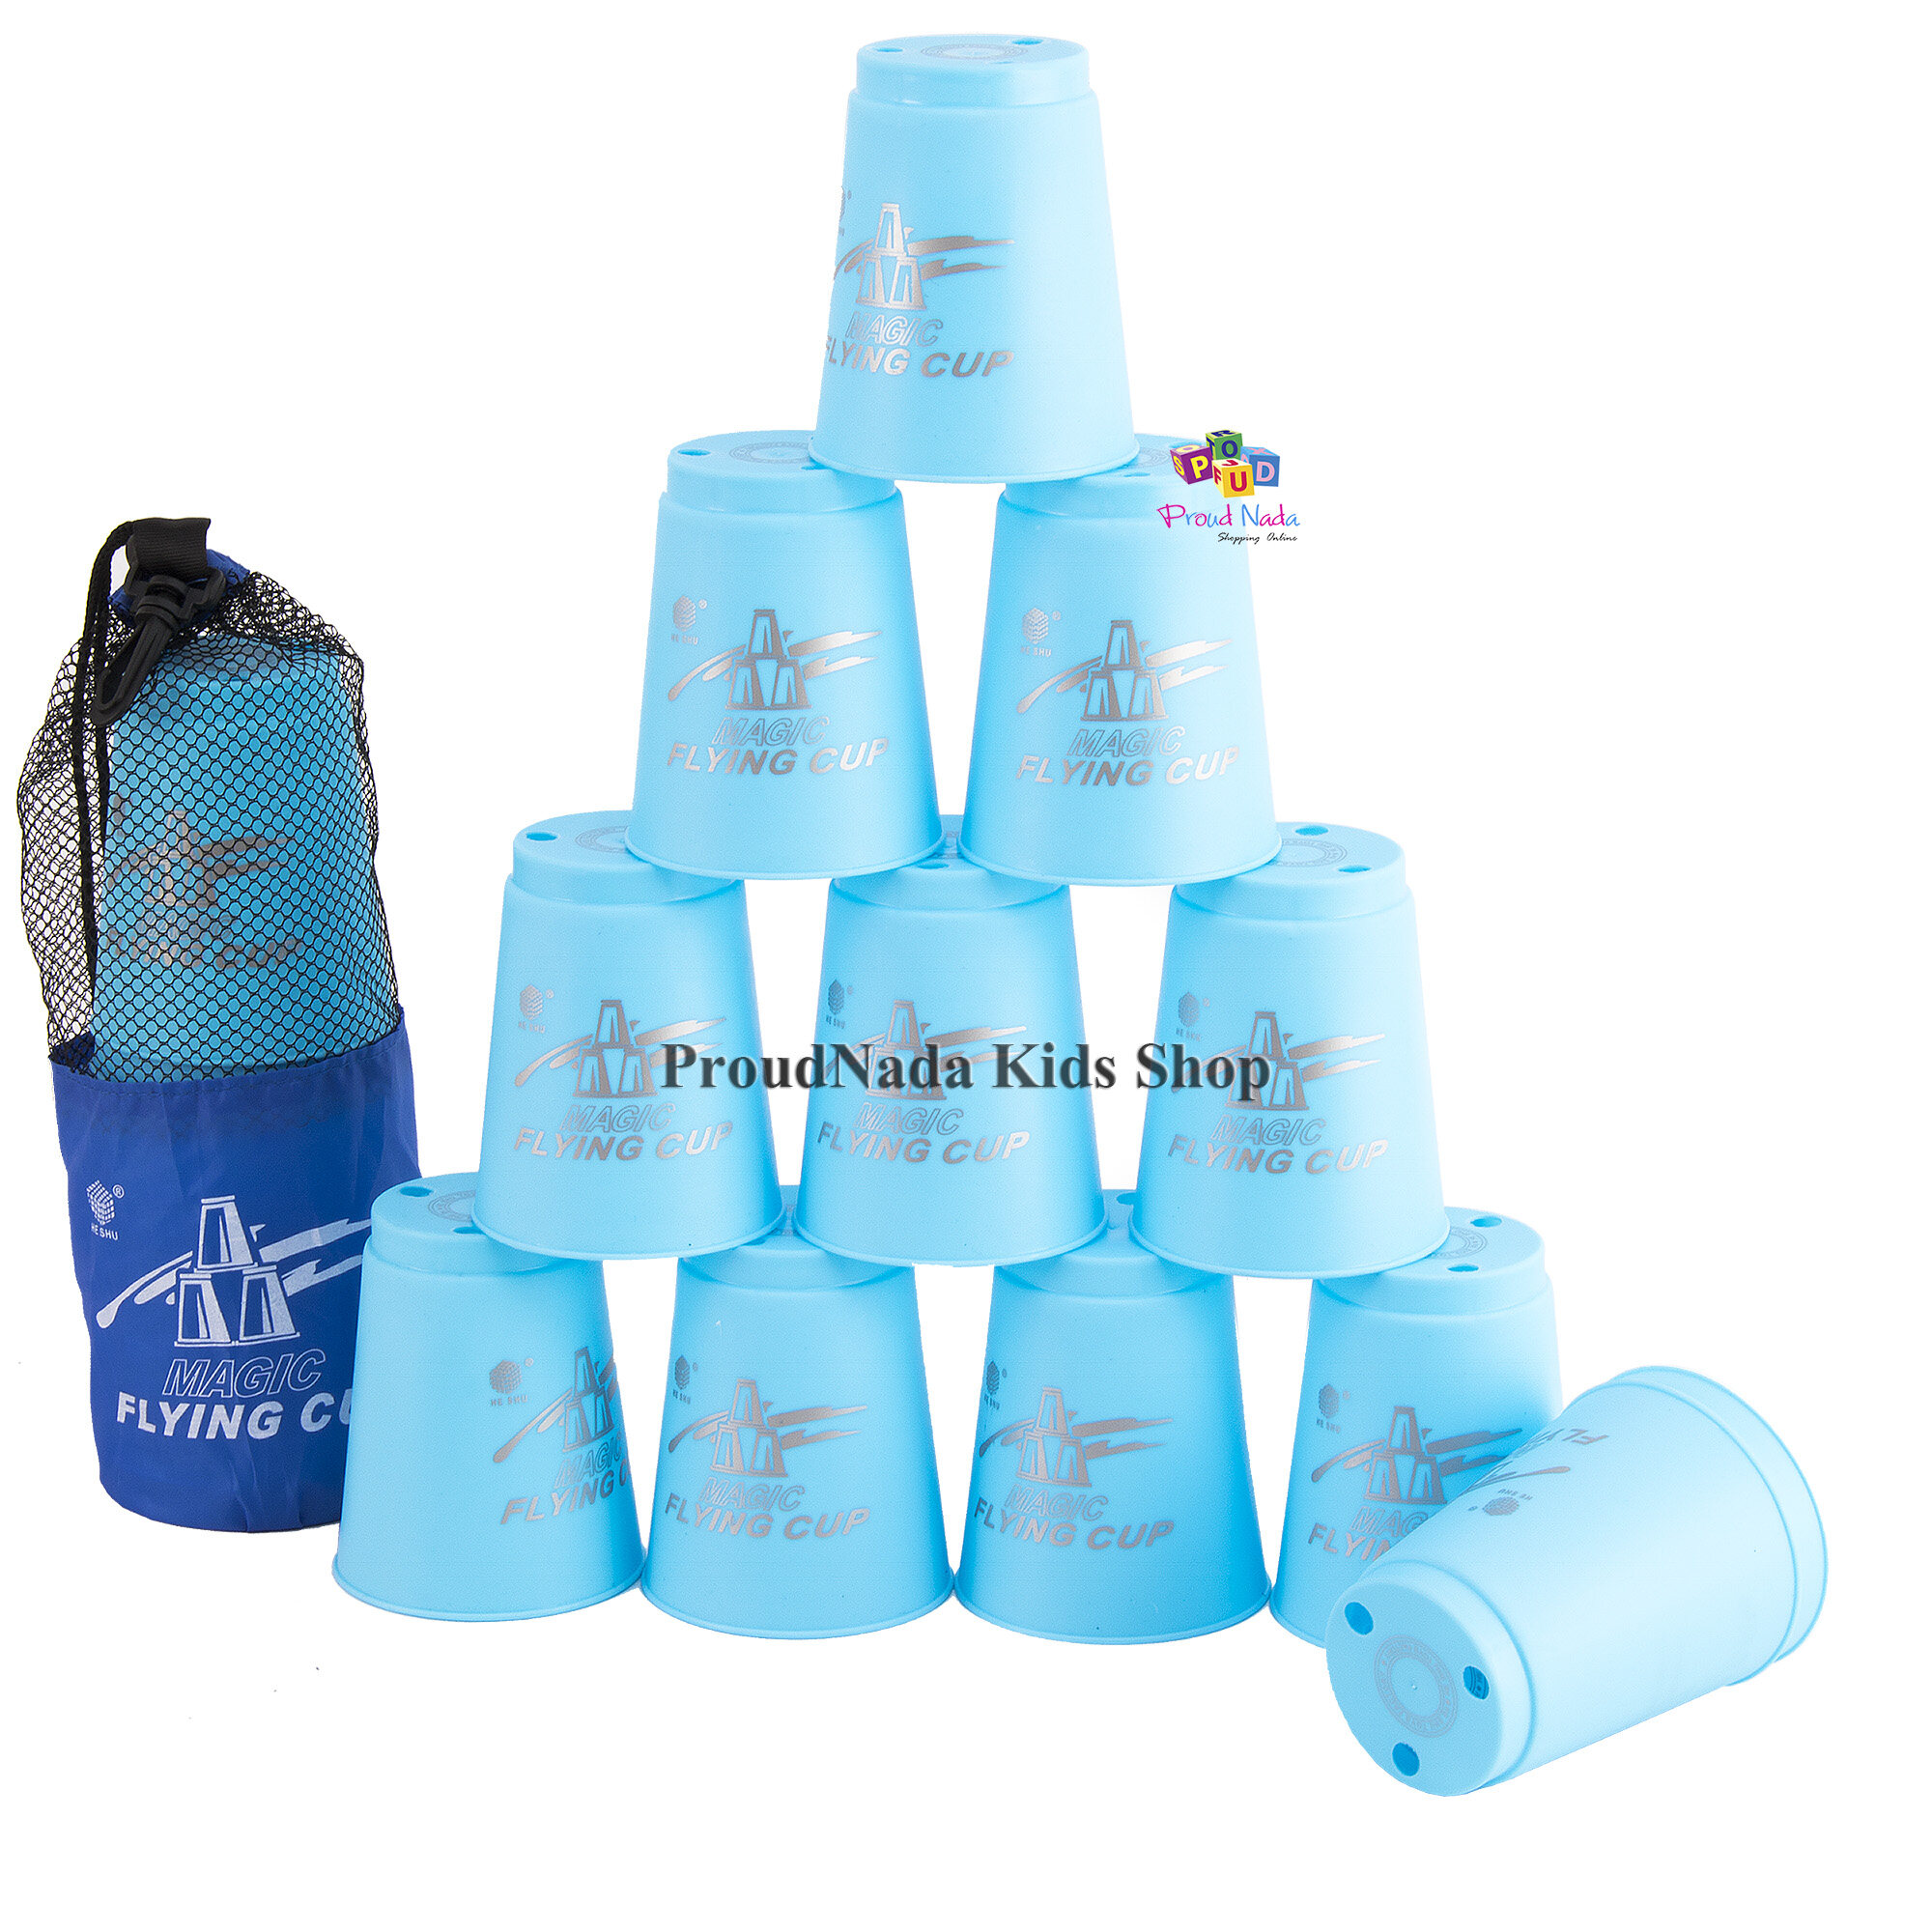 ProudNada Toys Stack Cup เกมส์เรียงแก้ว(มีให้เลือกหลายสี) Magic flying stacked cup 12 PCS Rapid cup NO.P13